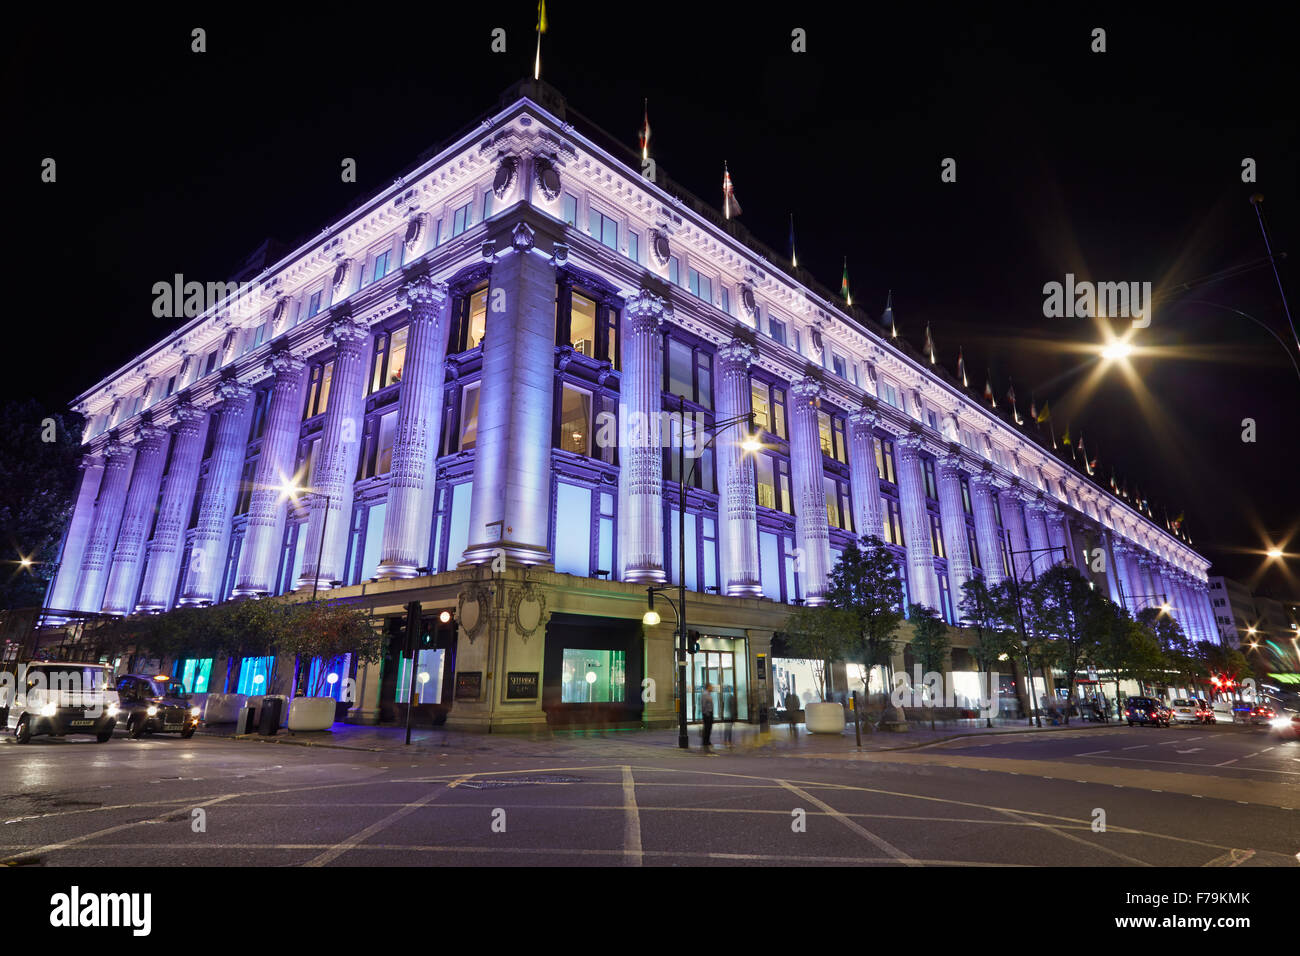 Selfridges Department Store in Oxford Street illuminated at night with people passing, central London - Stock Image